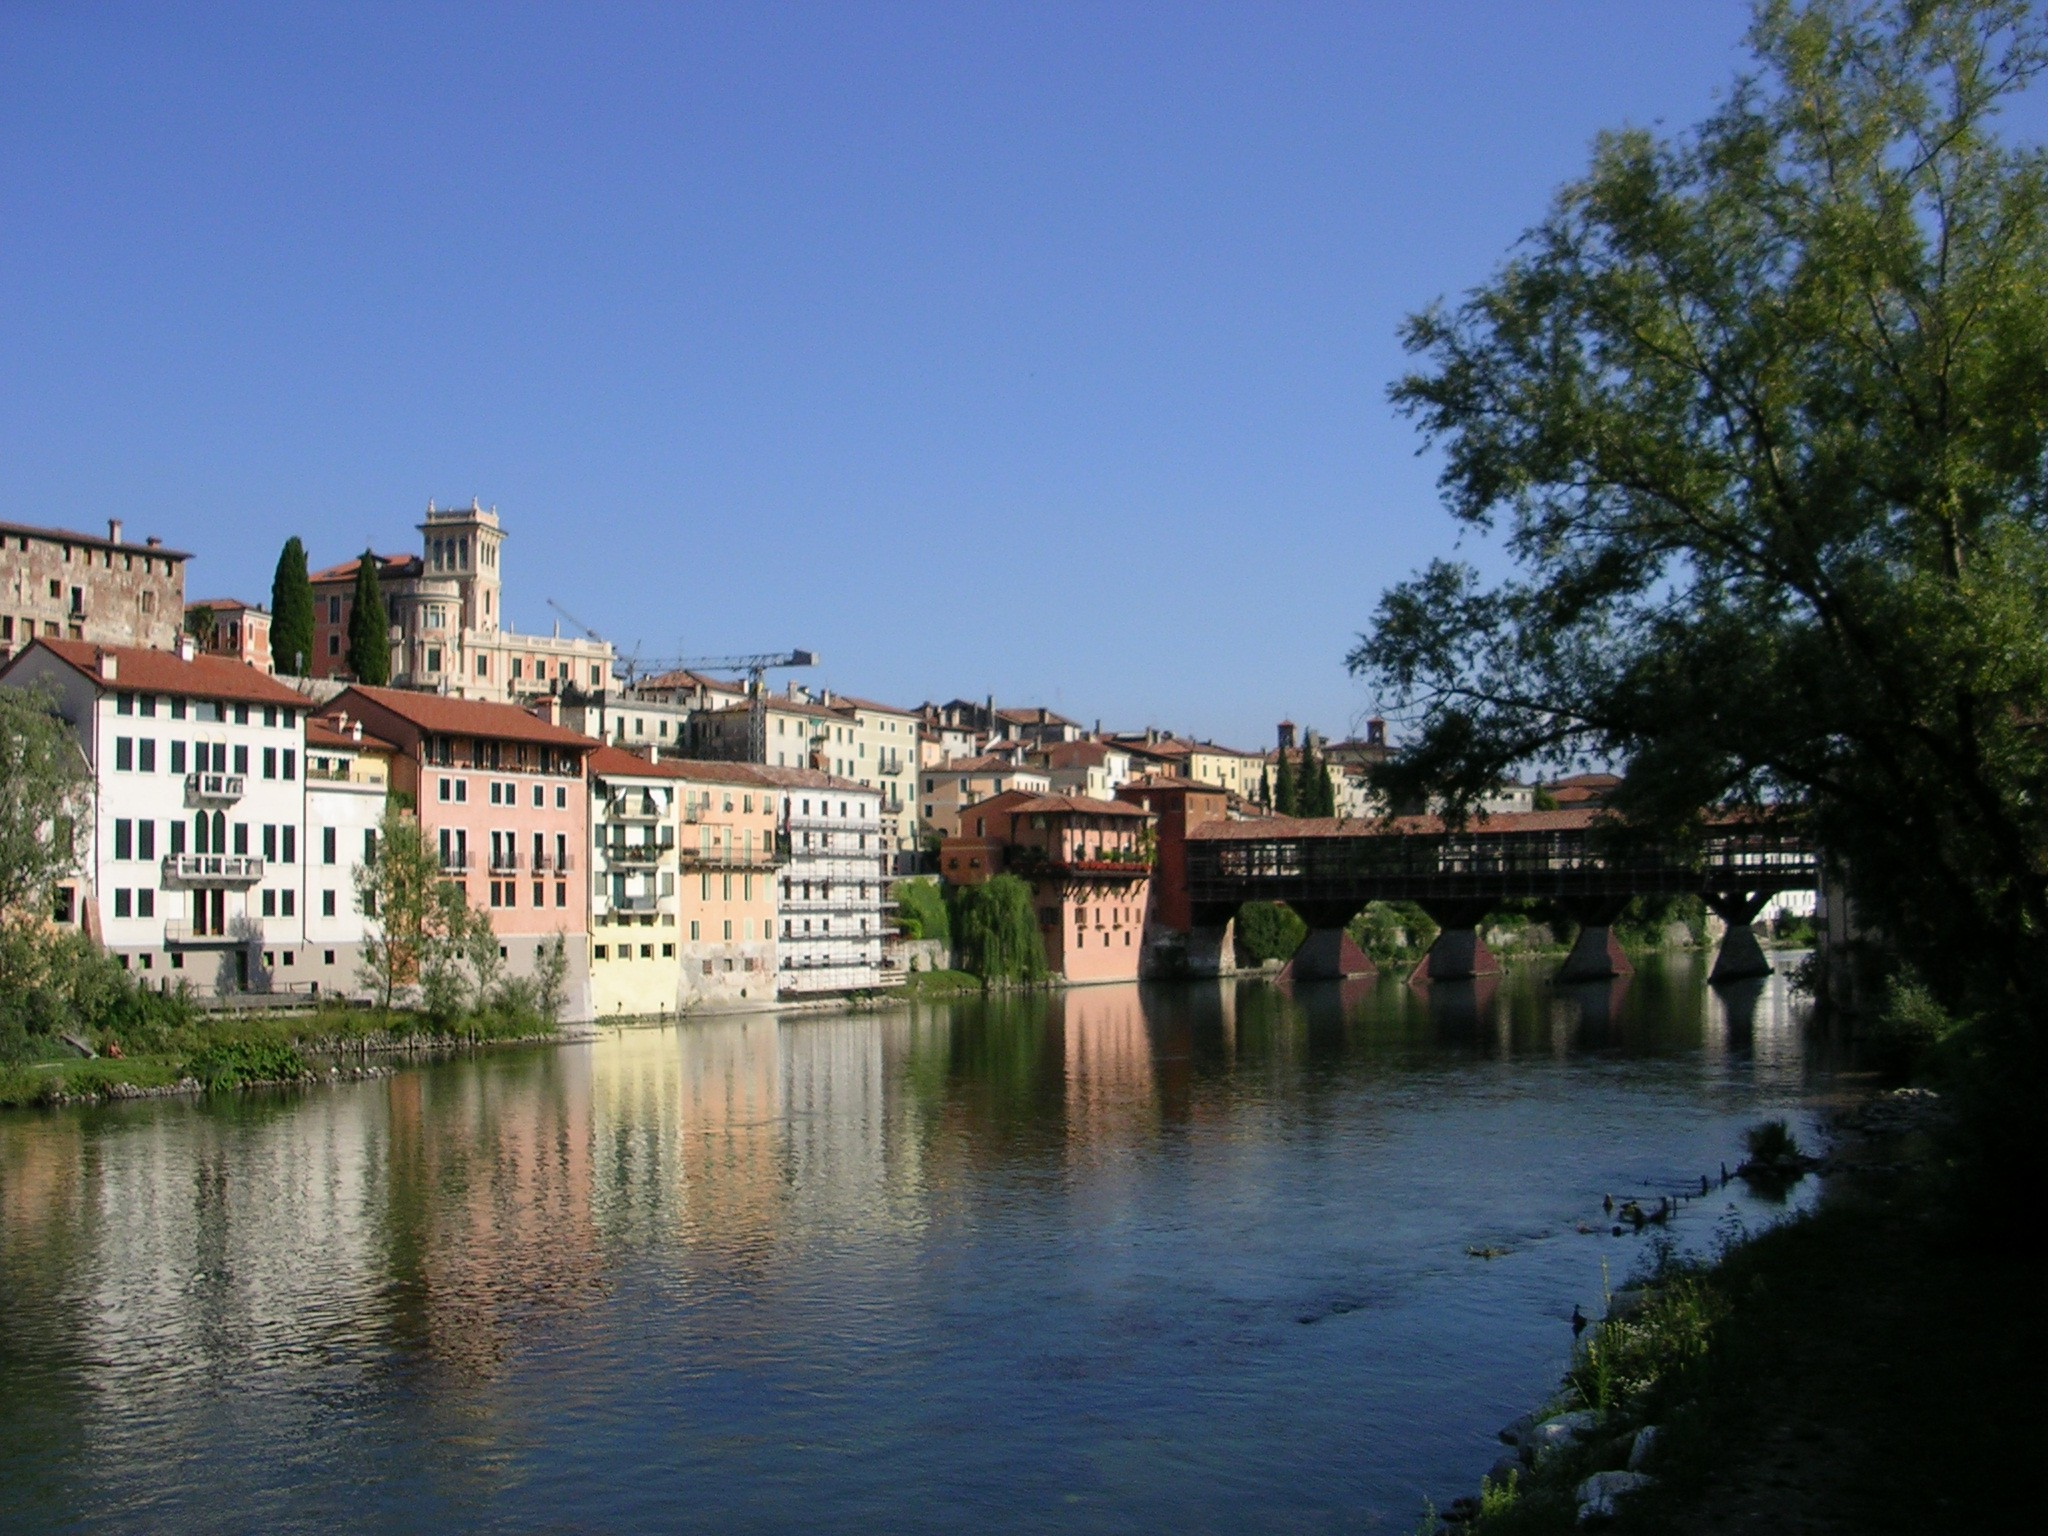 The best quality wallpaper bassano del grappa wallpapers for Arredamenti bassano del grappa